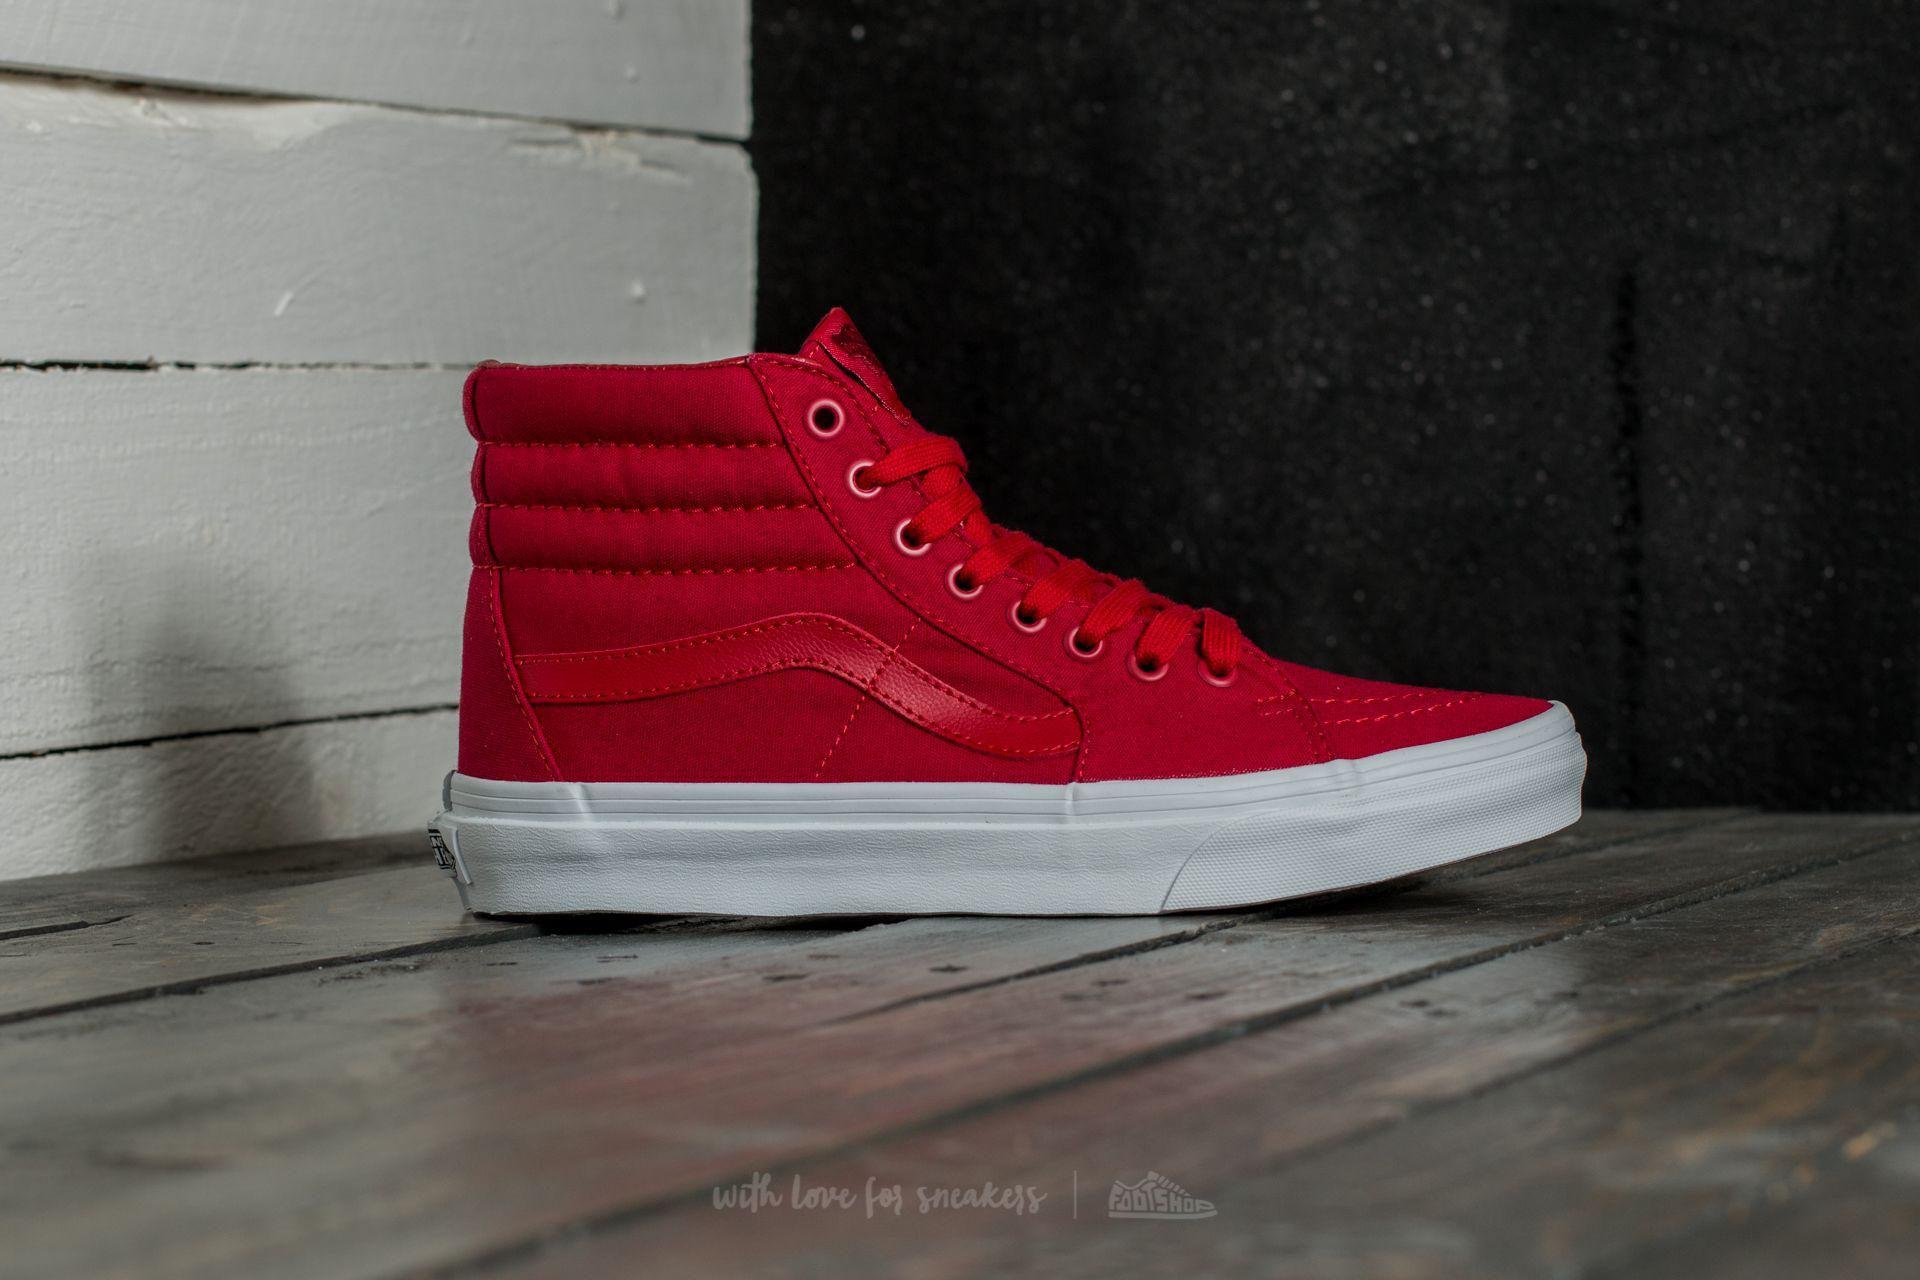 733bf8f36a Lyst - Vans Sk8-hi (mono Canvas) Chili Pepper  True White in Red for Men